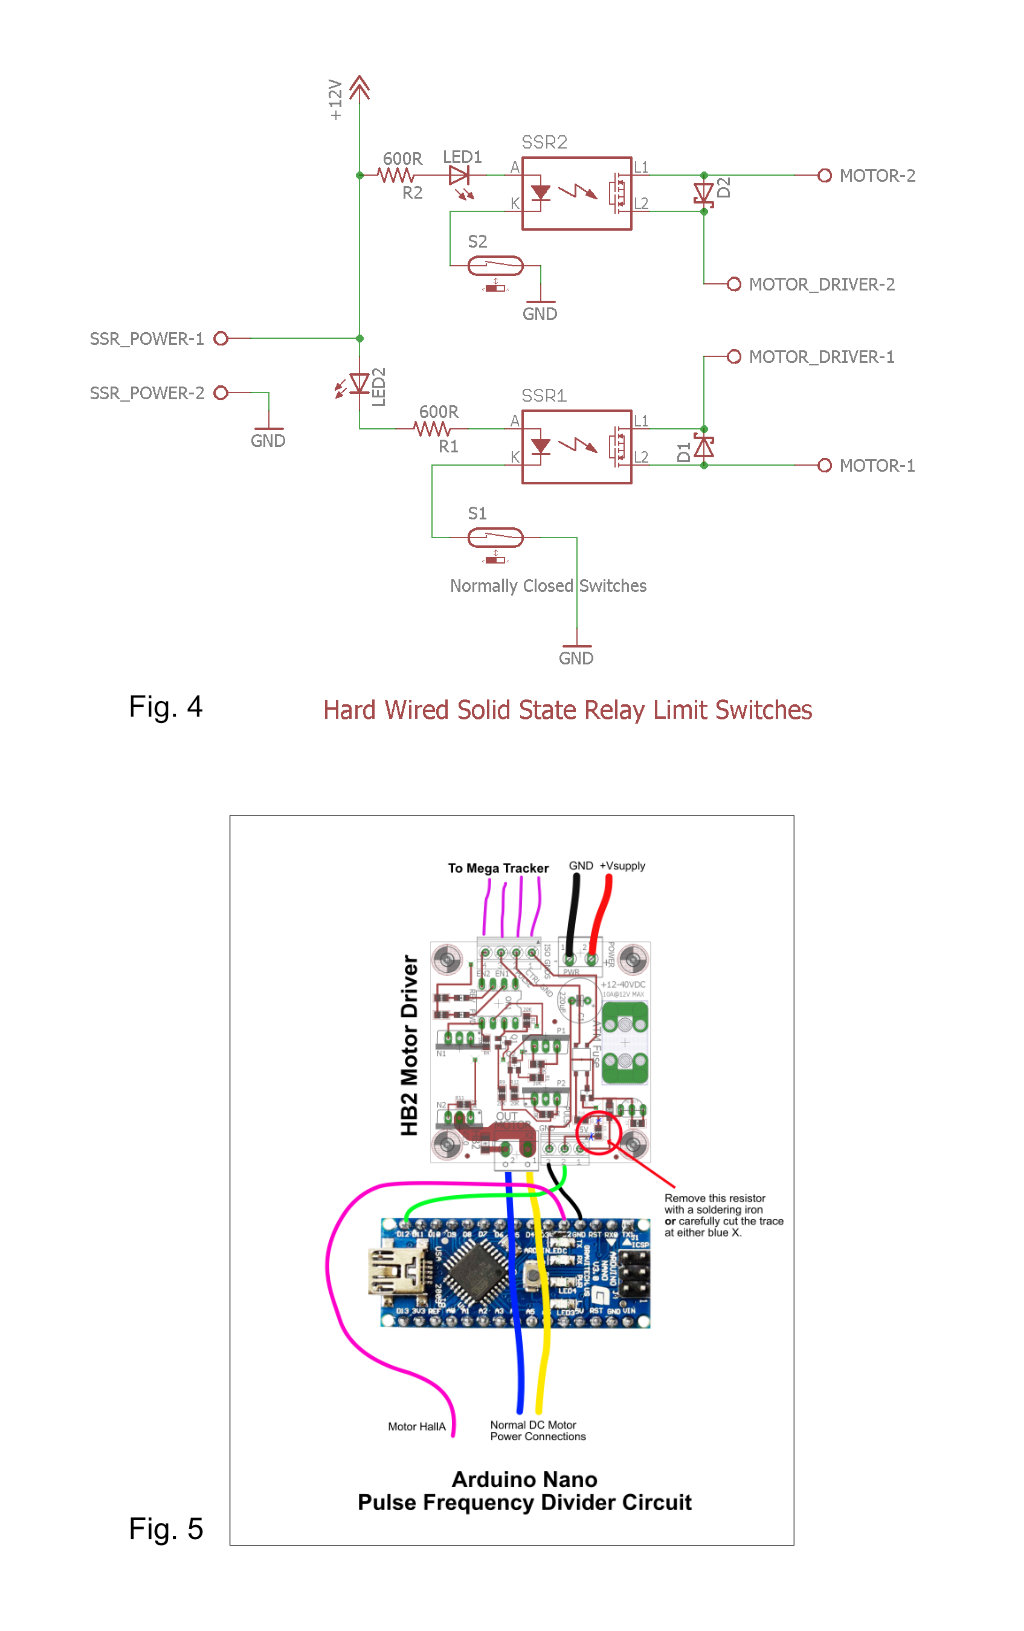 Hall Effects Pulse Signals And Limit Switches Home Csp Inc Circuit Closed Until The Switch Opens Relay Is Ssr Hard Schematic Freqency Divider